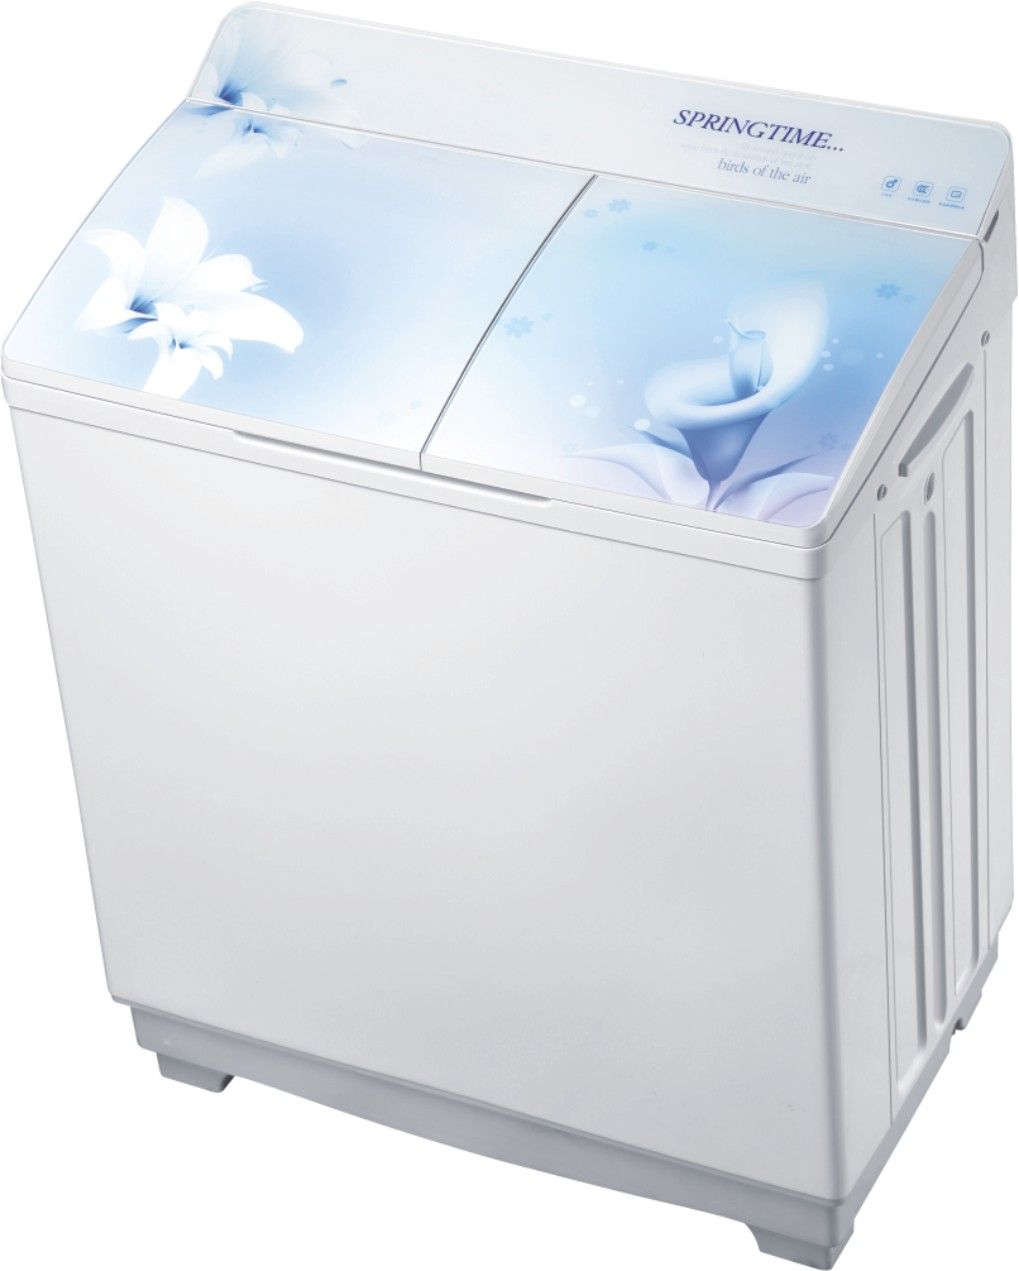 XPB95-8950S( flat tempered glass cover) twin tub washing machine